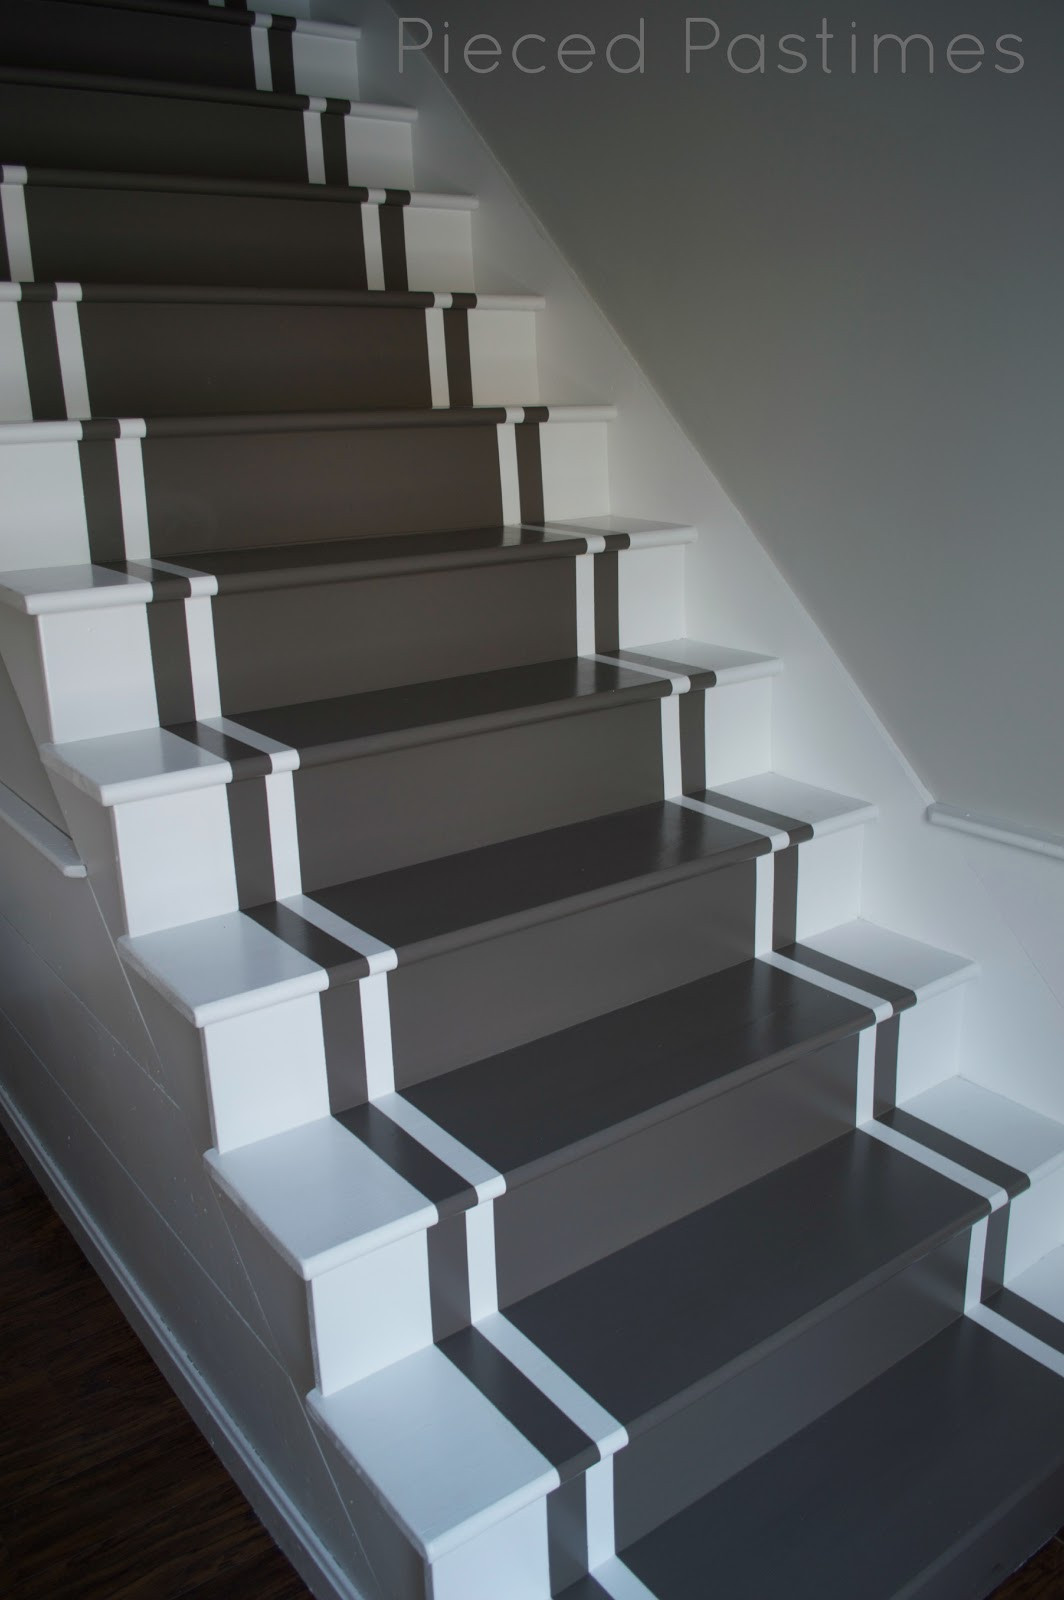 Best ideas about The Staircase 2 . Save or Pin Pieced Pastimes DIY Painted Stair Runner Now.